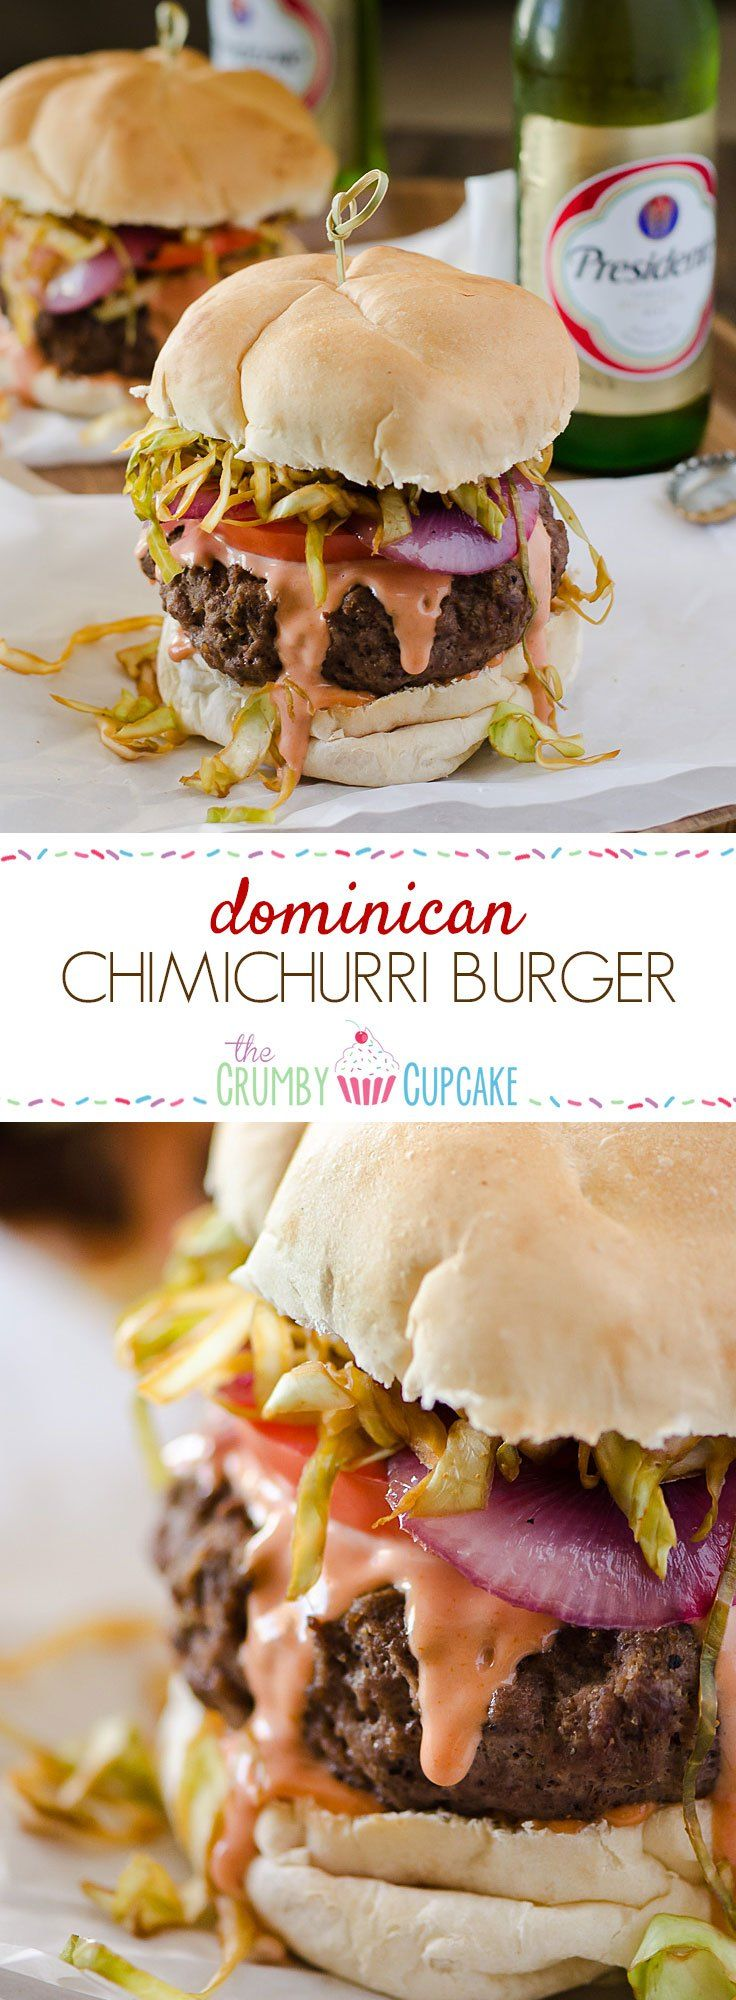 35 best dominican republic food images on pinterest caribbean food dominican chimichurri burgers sundaysupper forumfinder Choice Image